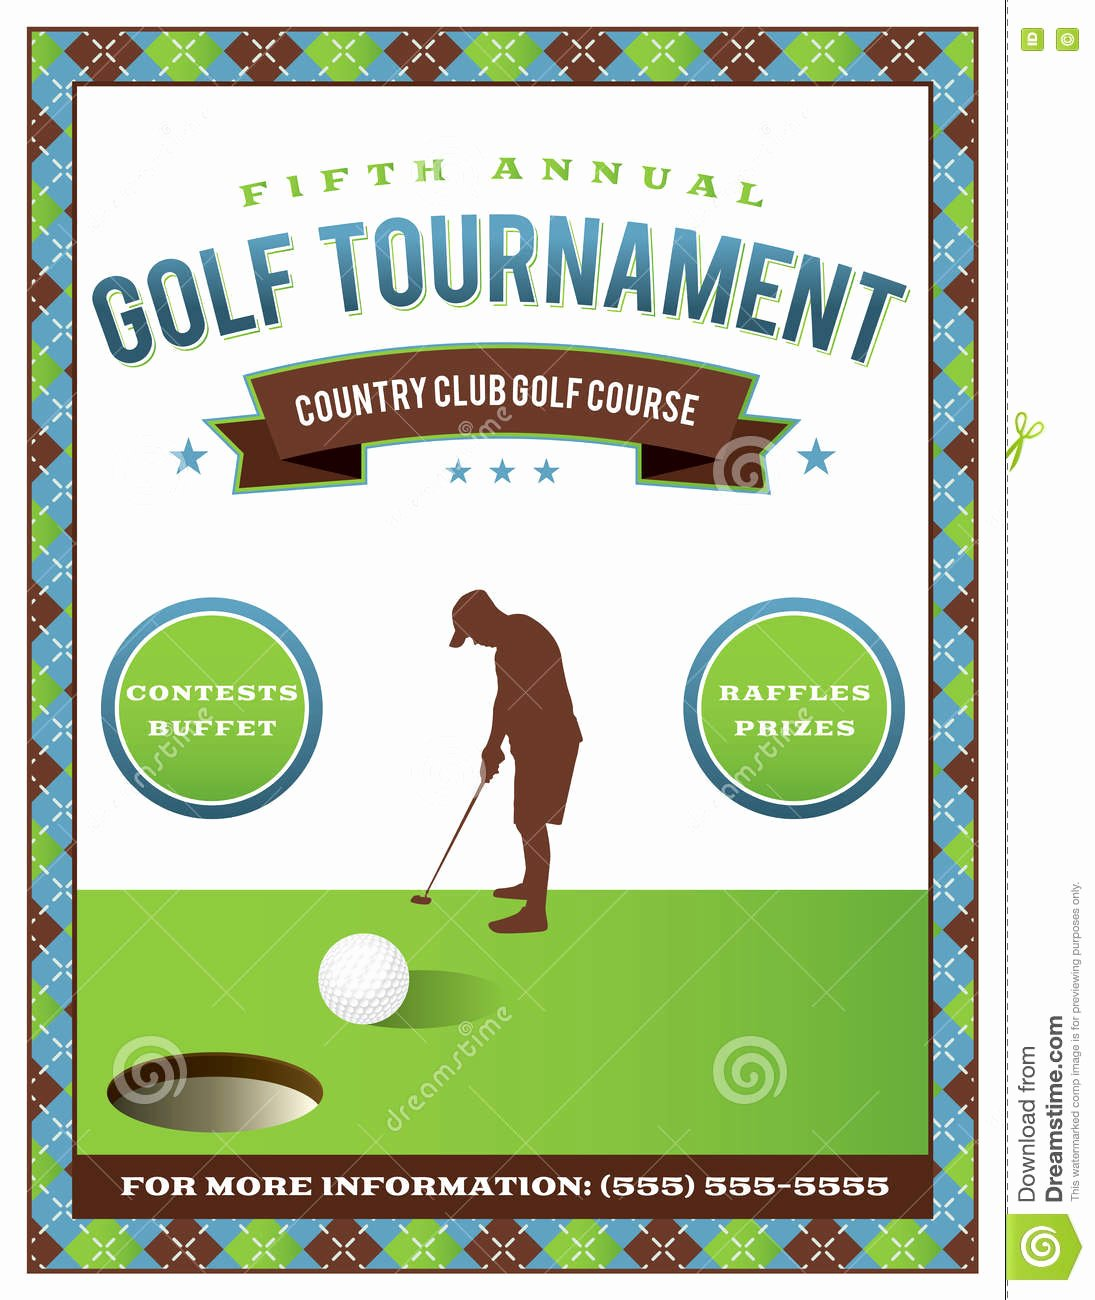 Golf tournament Flyer Templates Awesome Free Golf tournament Flyer Template – Emmamcintyrephotography